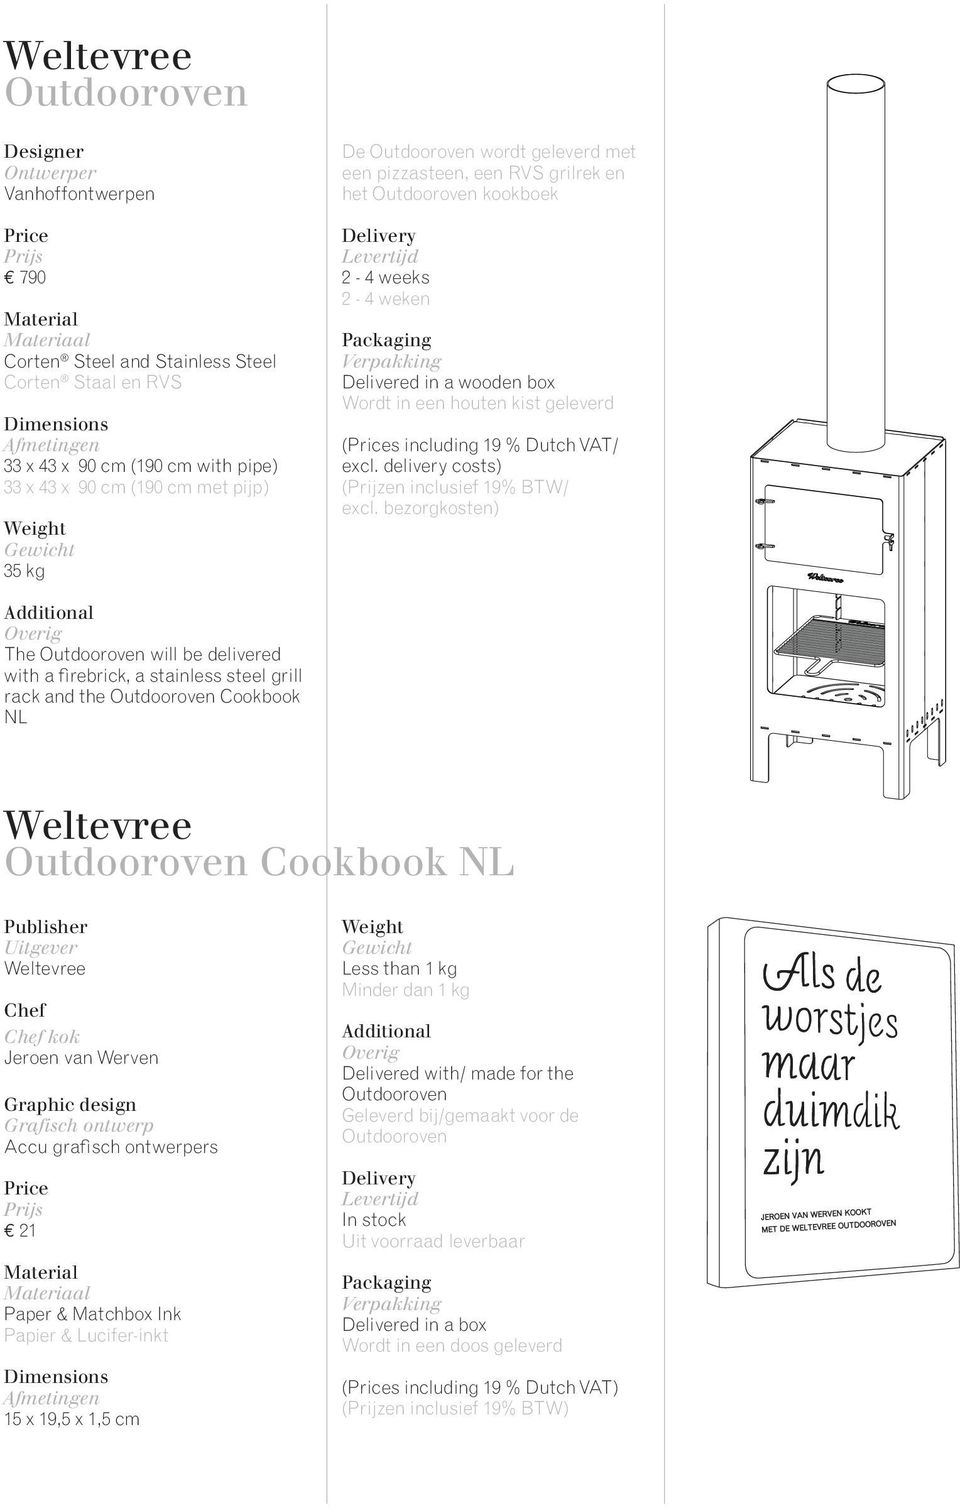 delivered with a firebrick, a stainless steel grill rack and the Outdooroven Cookbook NL Weltevree Outdooroven Cookbook NL Publisher Uitgever Weltevree Chef Chef kok Jeroen van Werven Graphic design